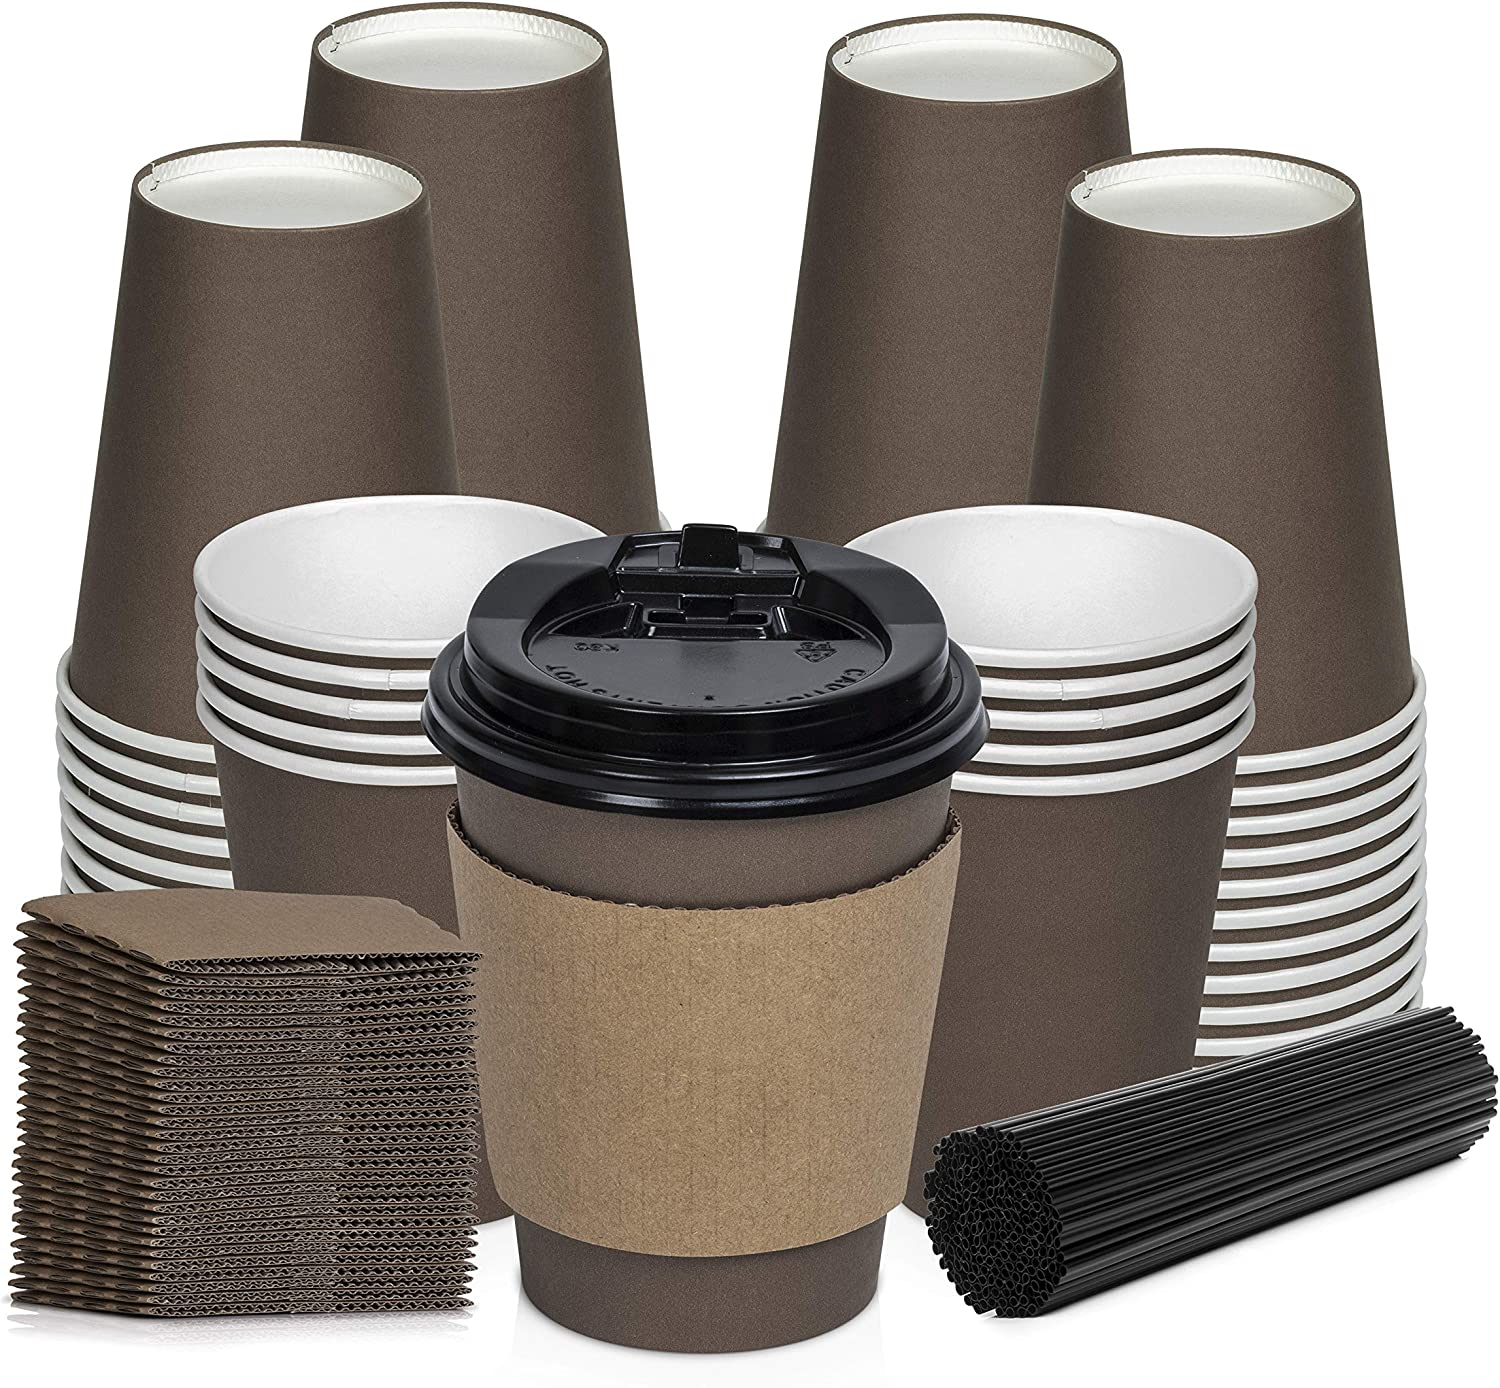 100 Pack Disposable Coffee Cups with Lids, Straws, Sleeves - Premium Quality To Go Coffee Cups - Leak proof, Sturdy, Durable, Easy to hold (Mocha Brown, 12OZ)